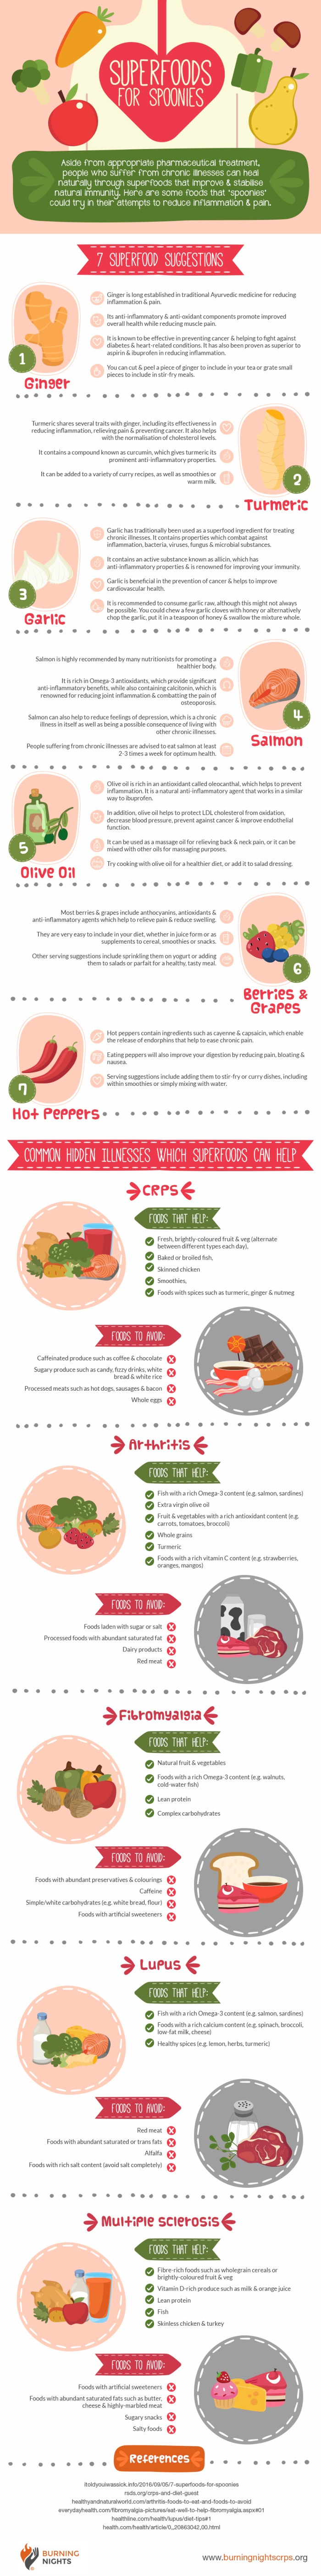 Superfoods-For-Spoonies-Infographic